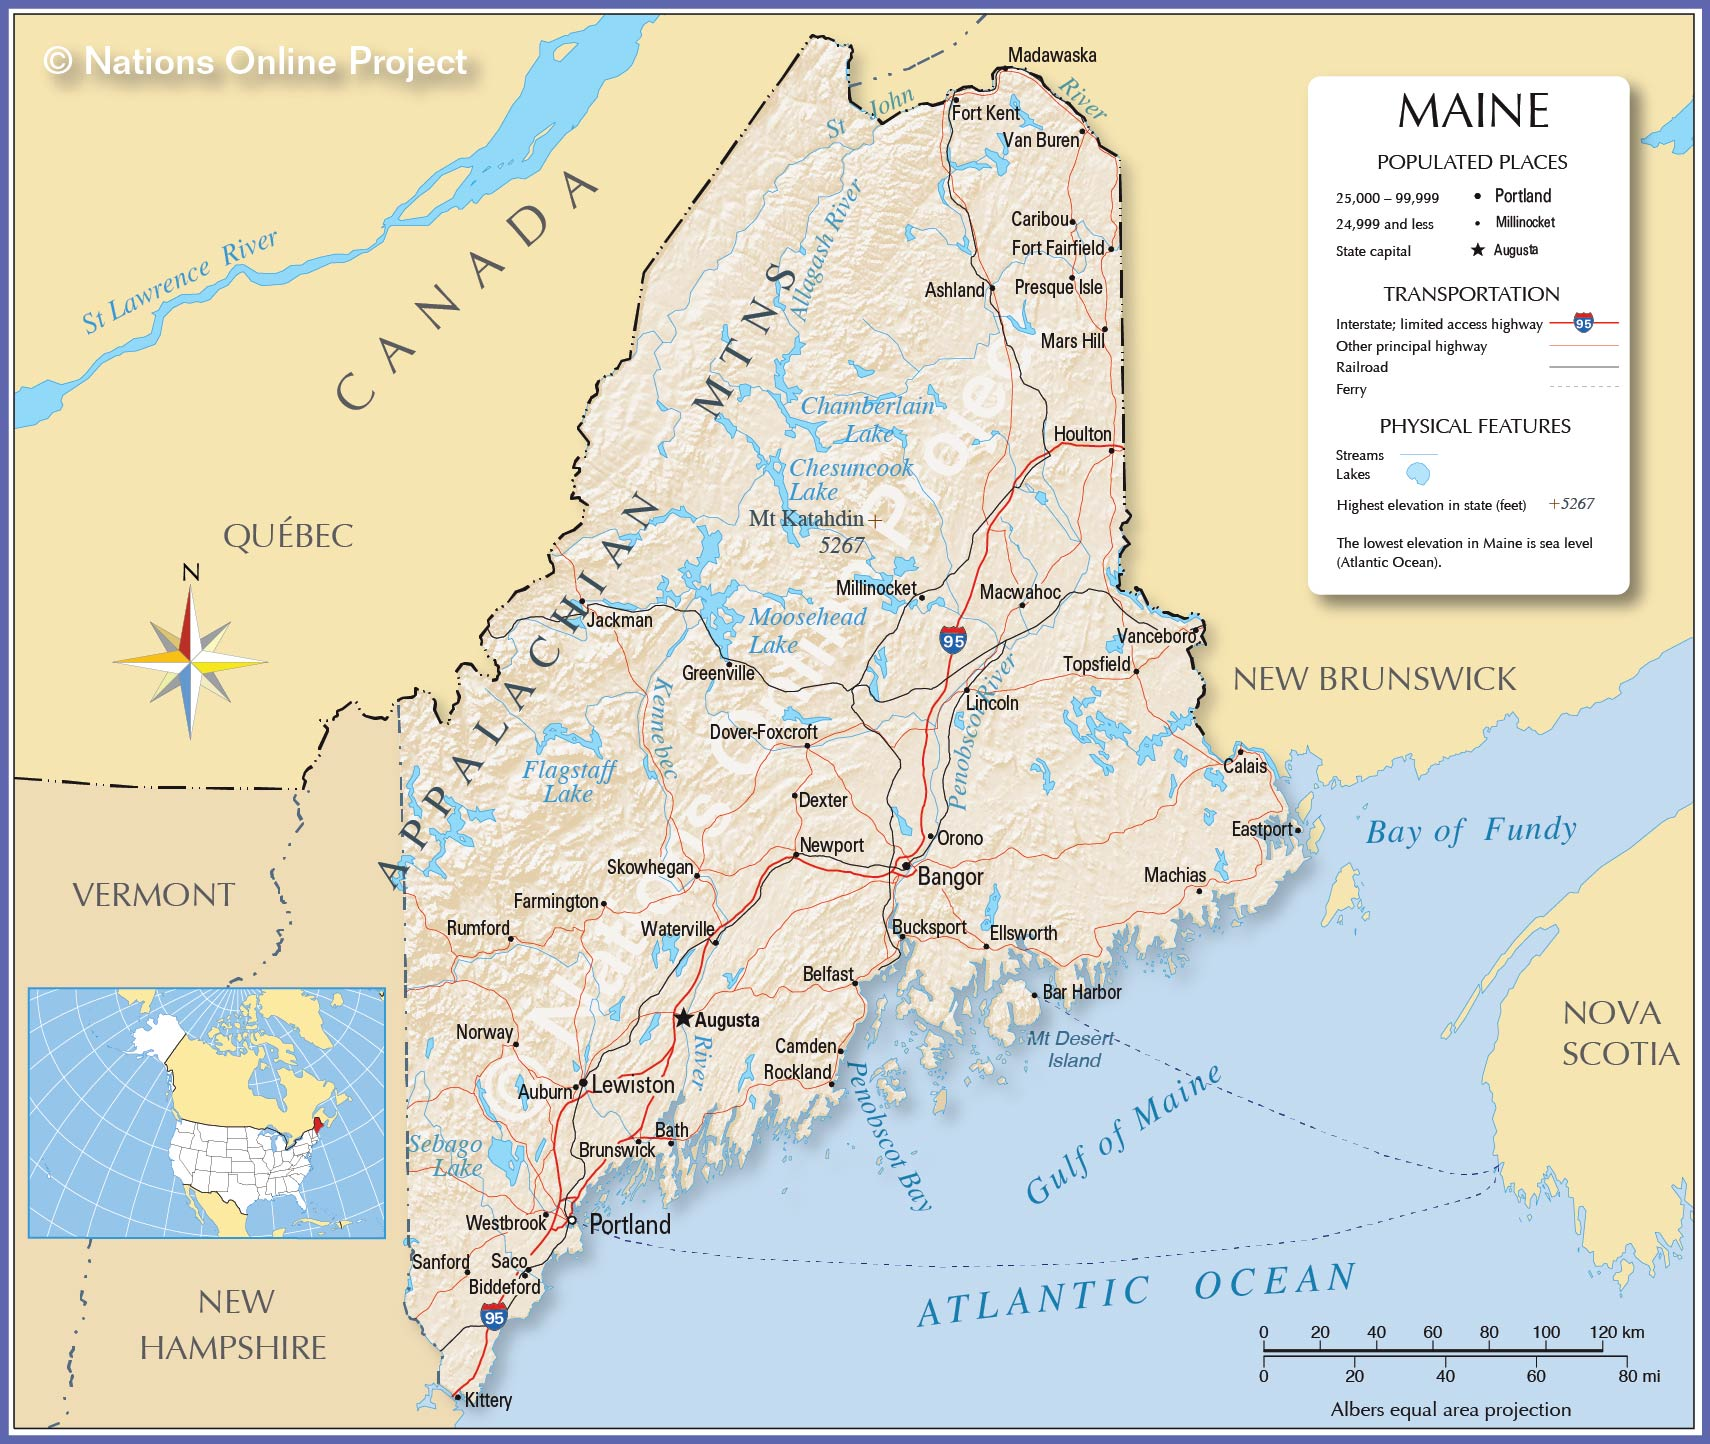 Reference Map Of Maine USA Nations Online Project - Maine in usa map